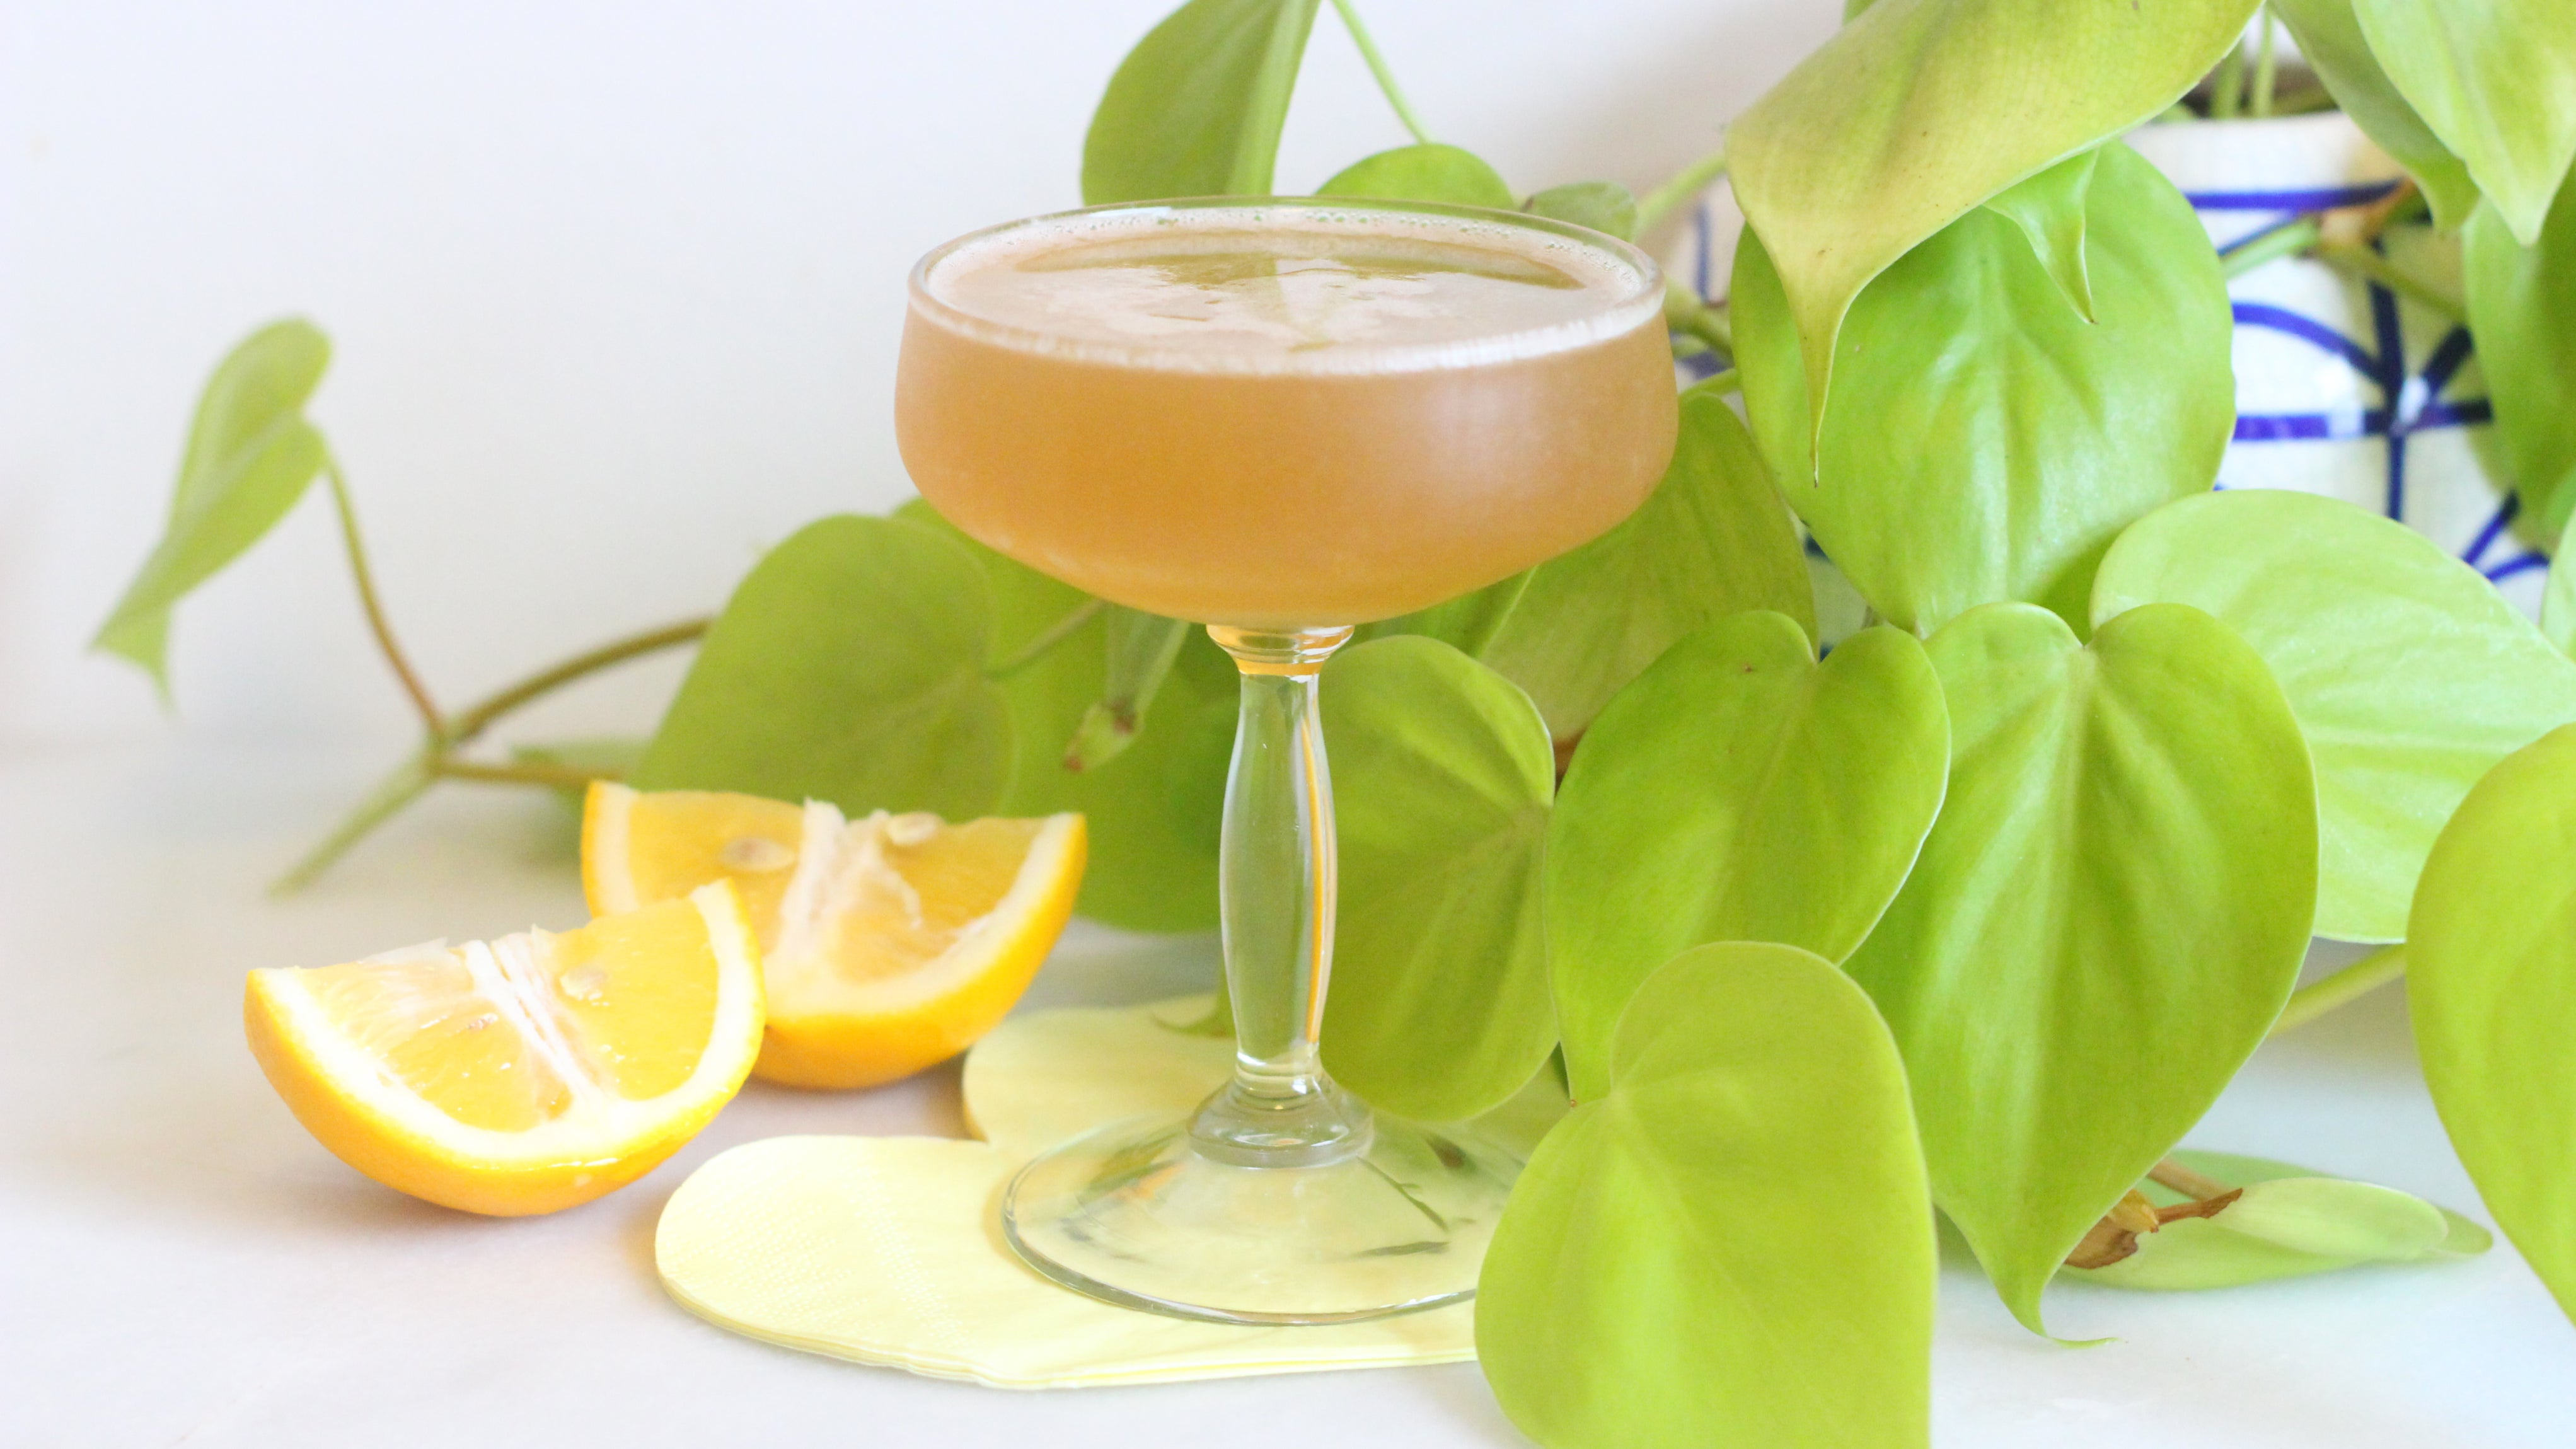 Inject Some Sunshine Into Your Weekend With This Sunny Rum Drink